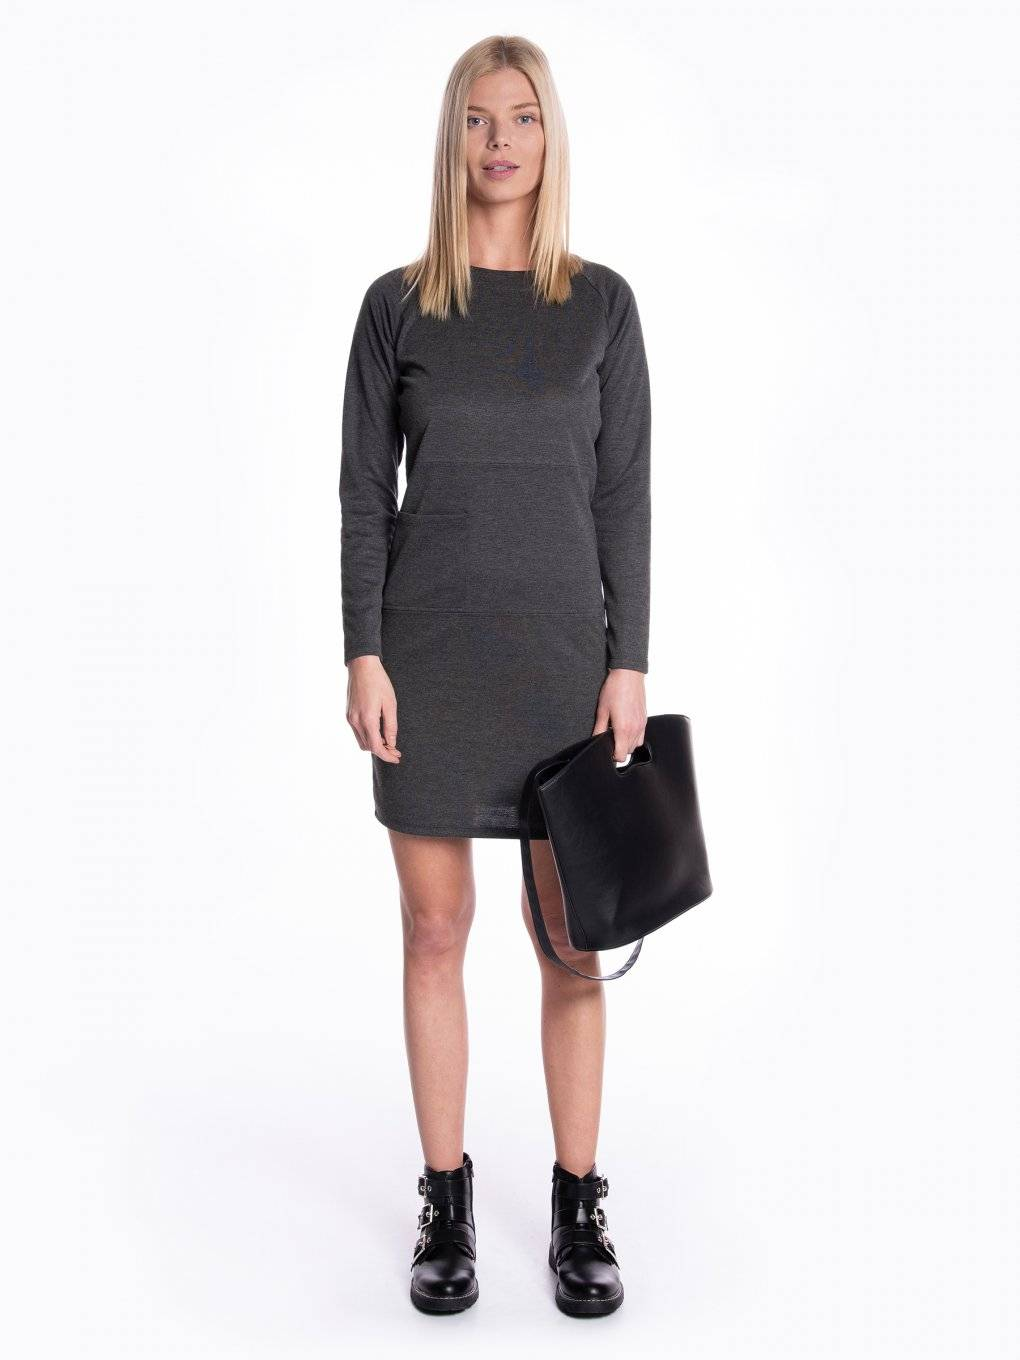 Comfy dress with pocket